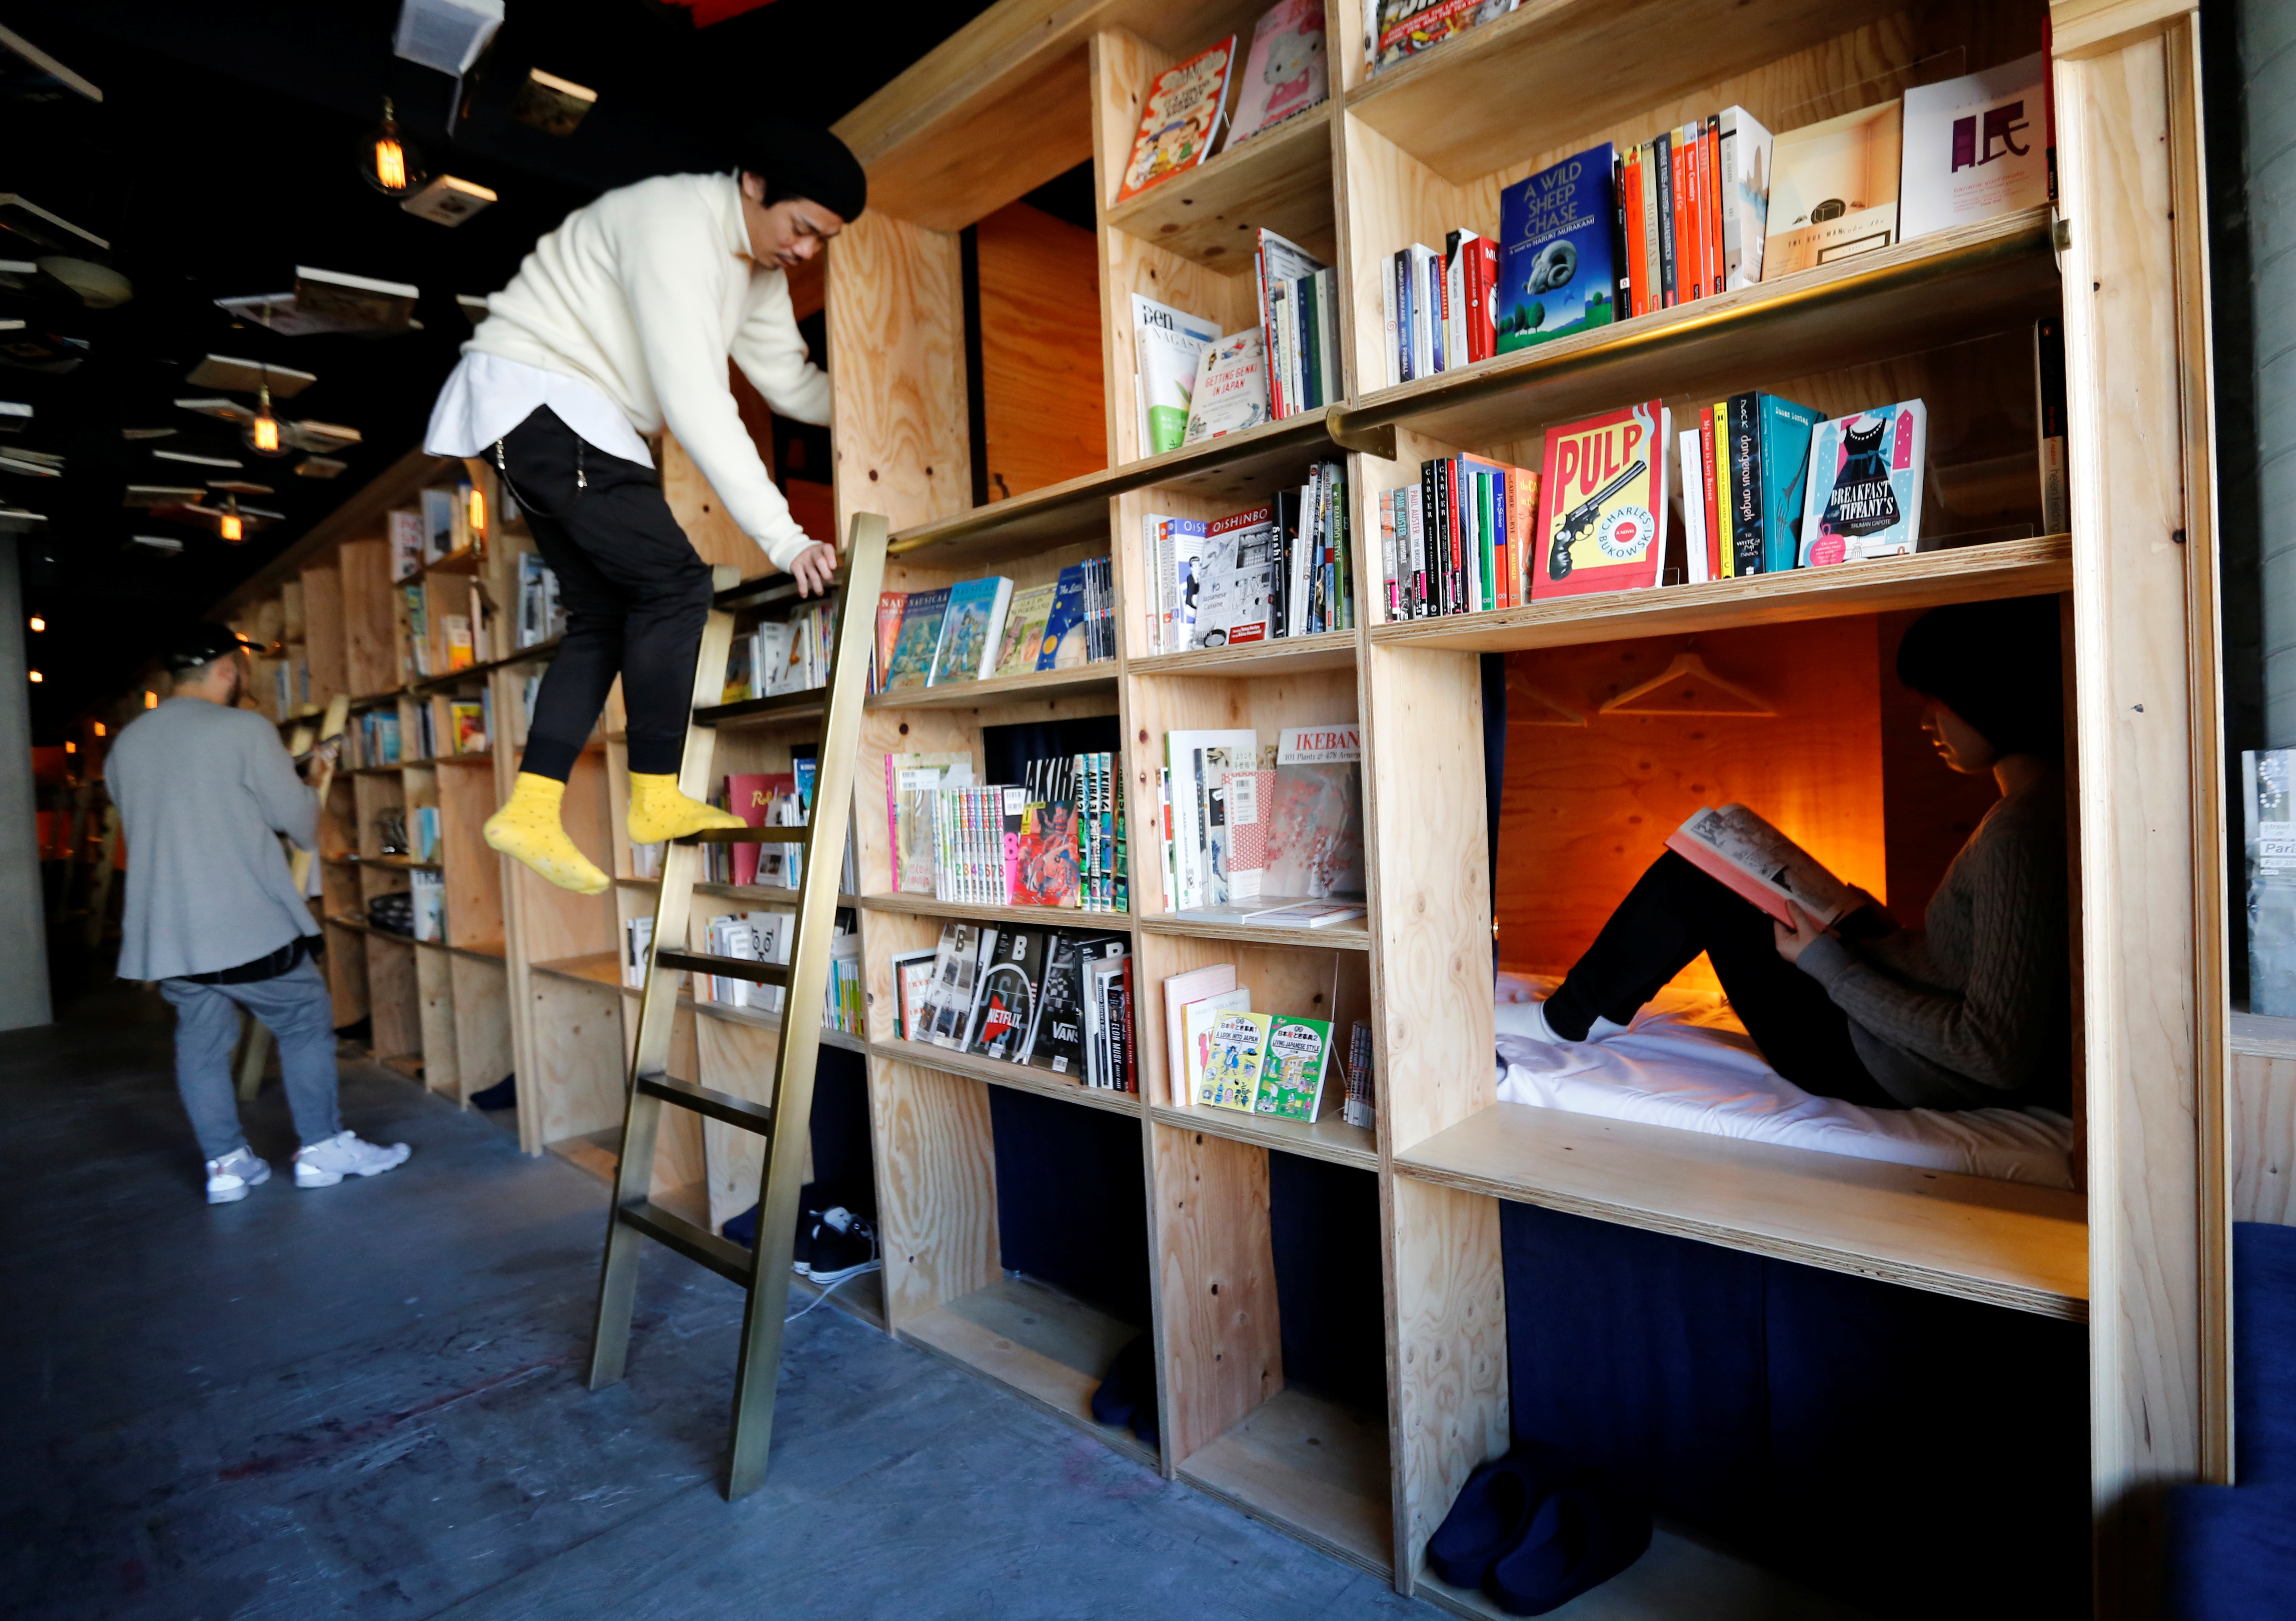 """Cabins are seen inside """"Book And Bed"""", a bookshop-themed capsule hotel, in Tokyo, Japan."""